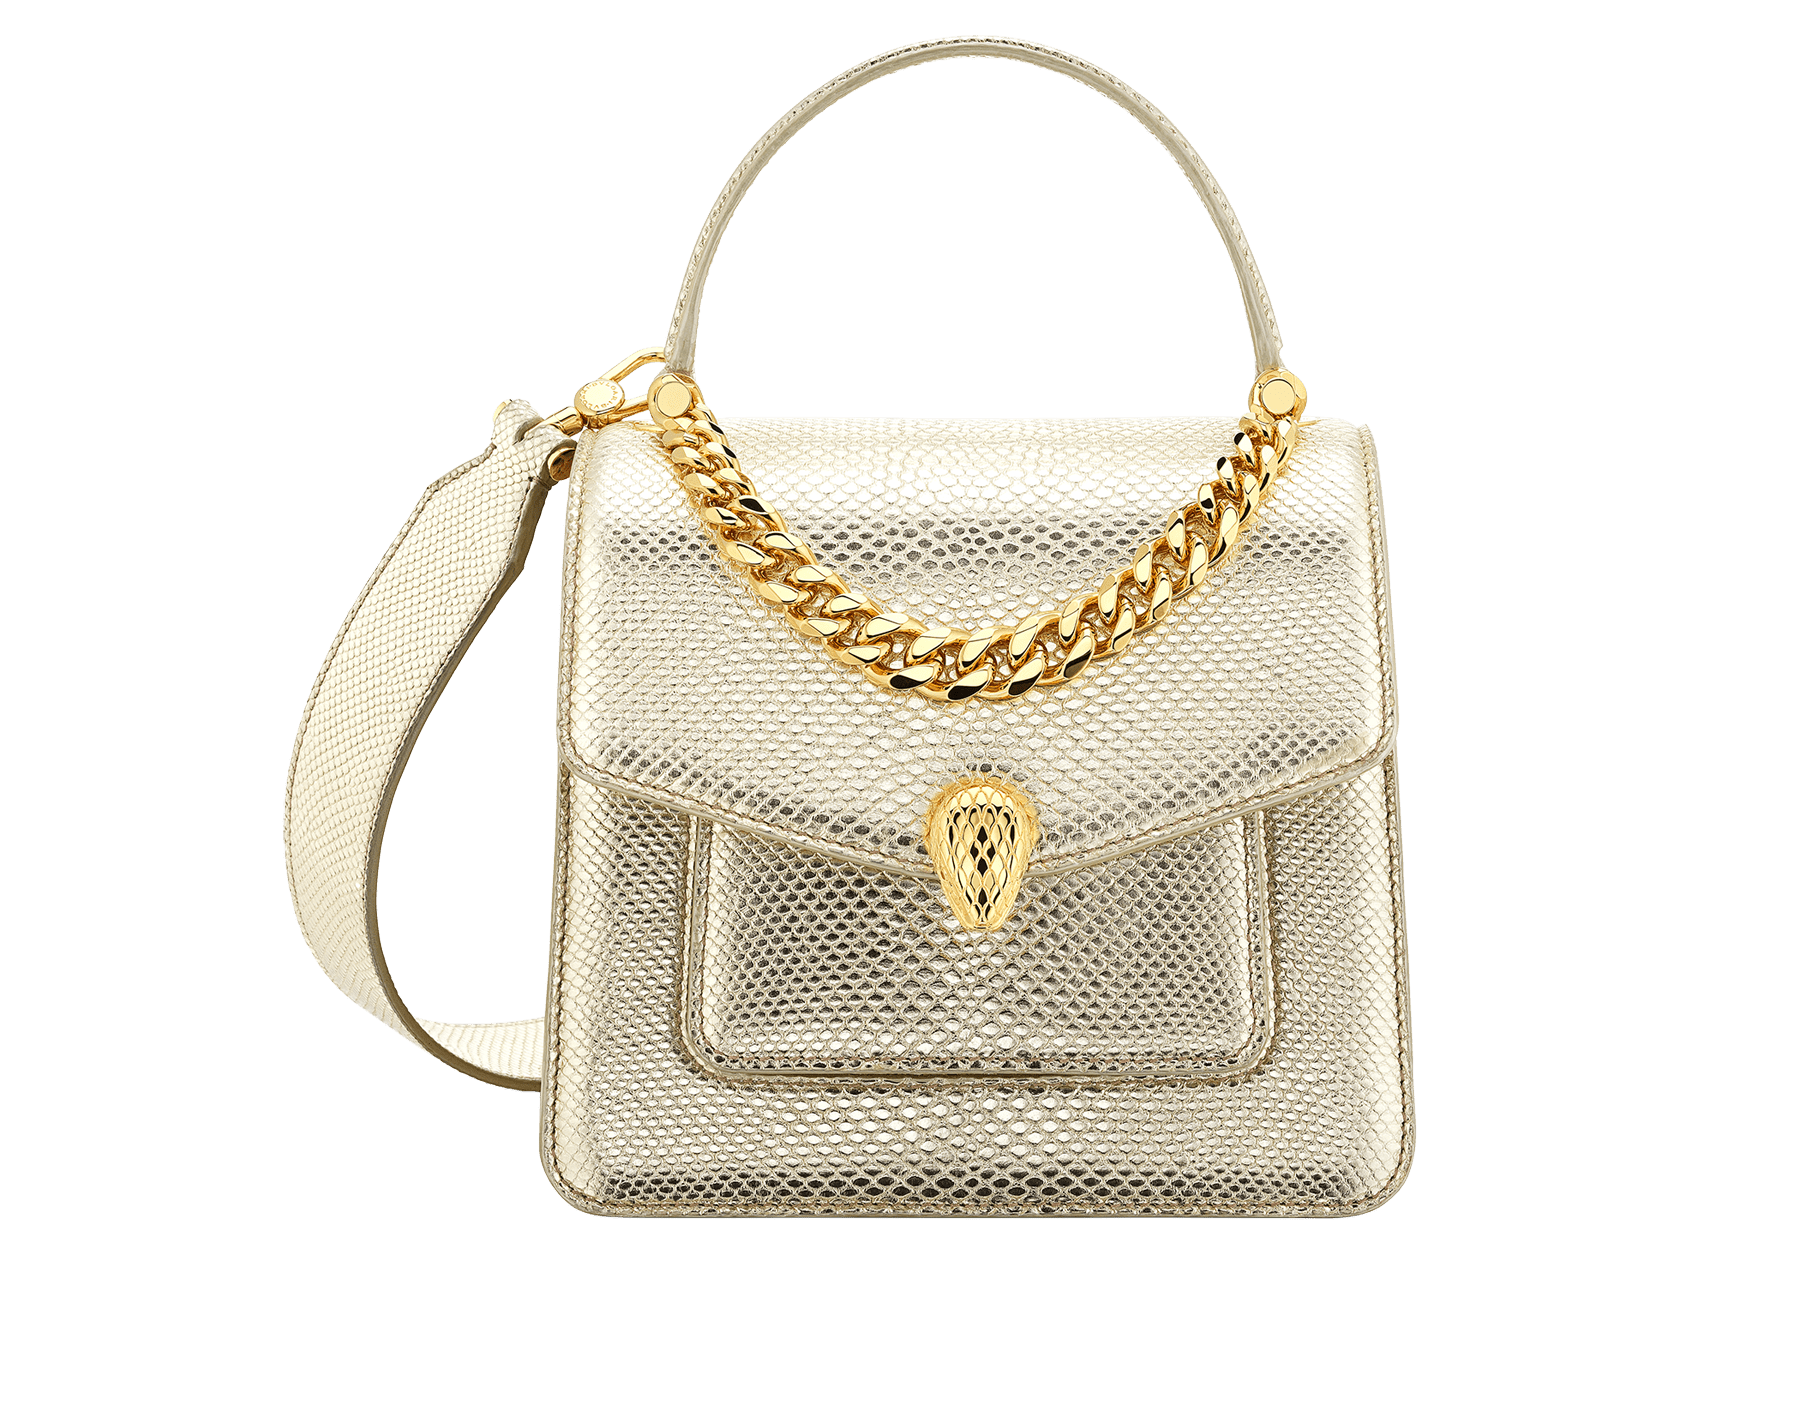 """Serpenti Forever"" small maxi chain top handle bag in peach nappa leather, with Lavander Amethyst lilac nappa leather internal lining. New Serpenti head closure in gold plated brass, finished with small pink mother-of-pearl scales in the middle and red enamel eyes. 1133-MCN image 1"